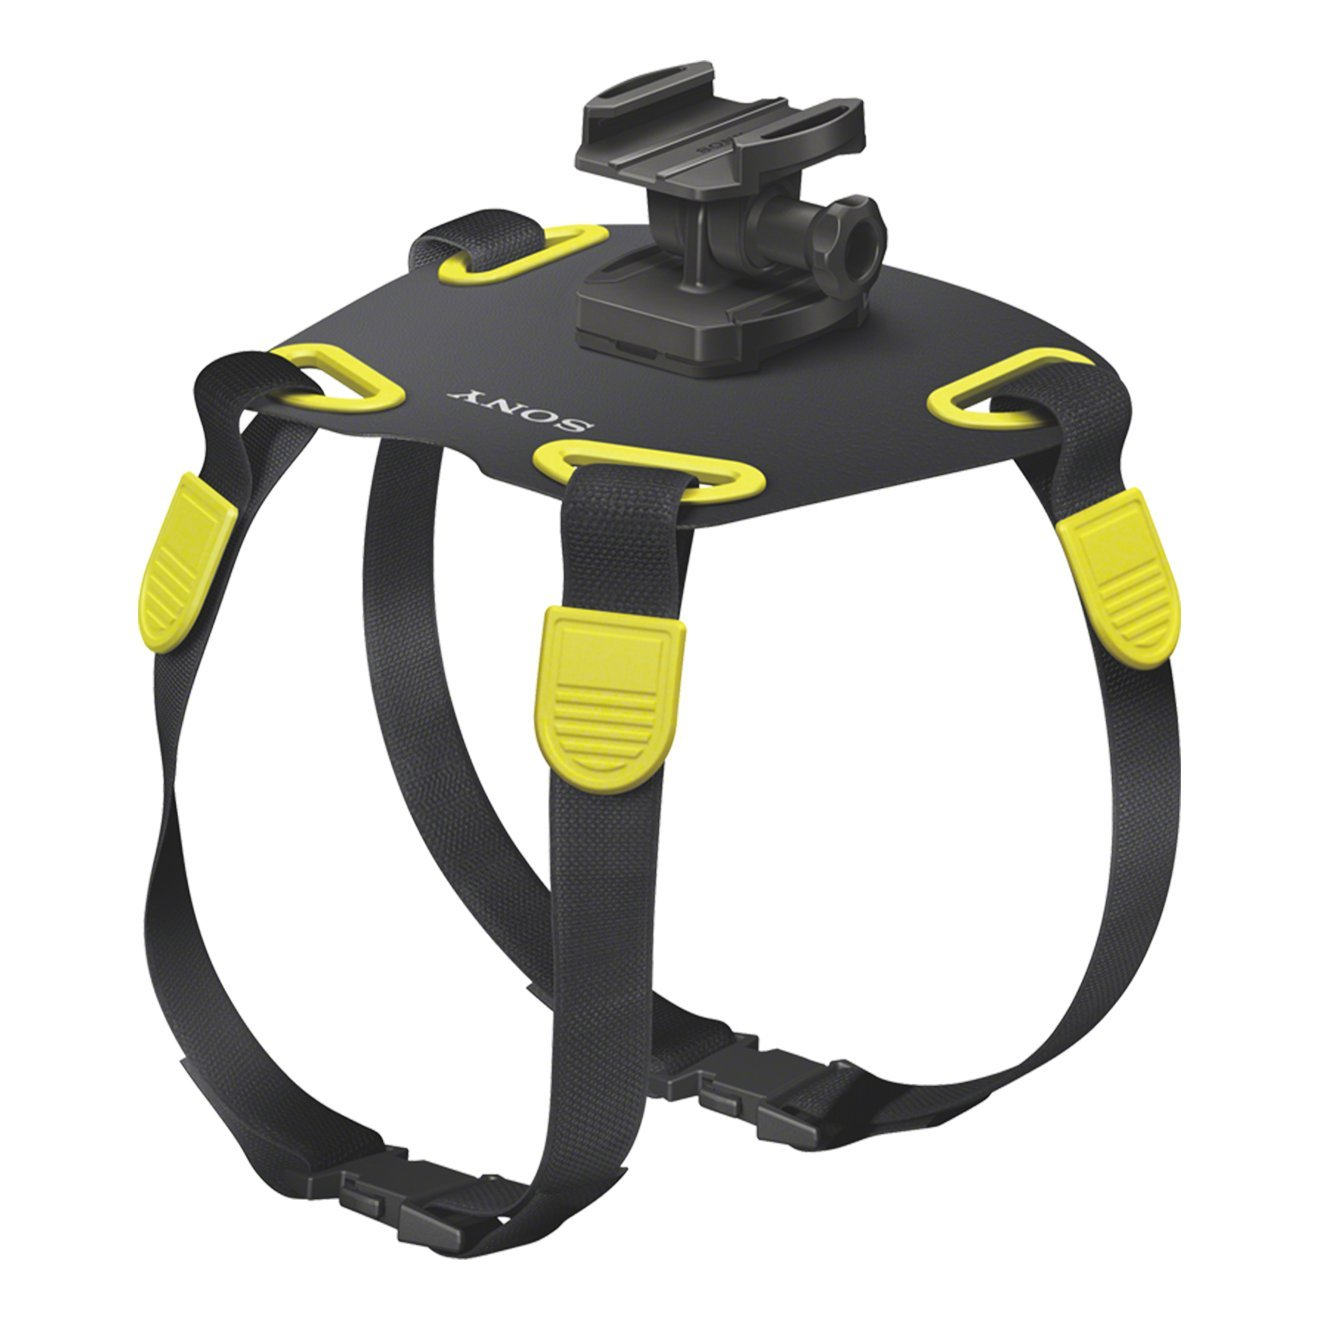 Sony AKADMI Action Dog Harness for CameraCustomer reviews and more information